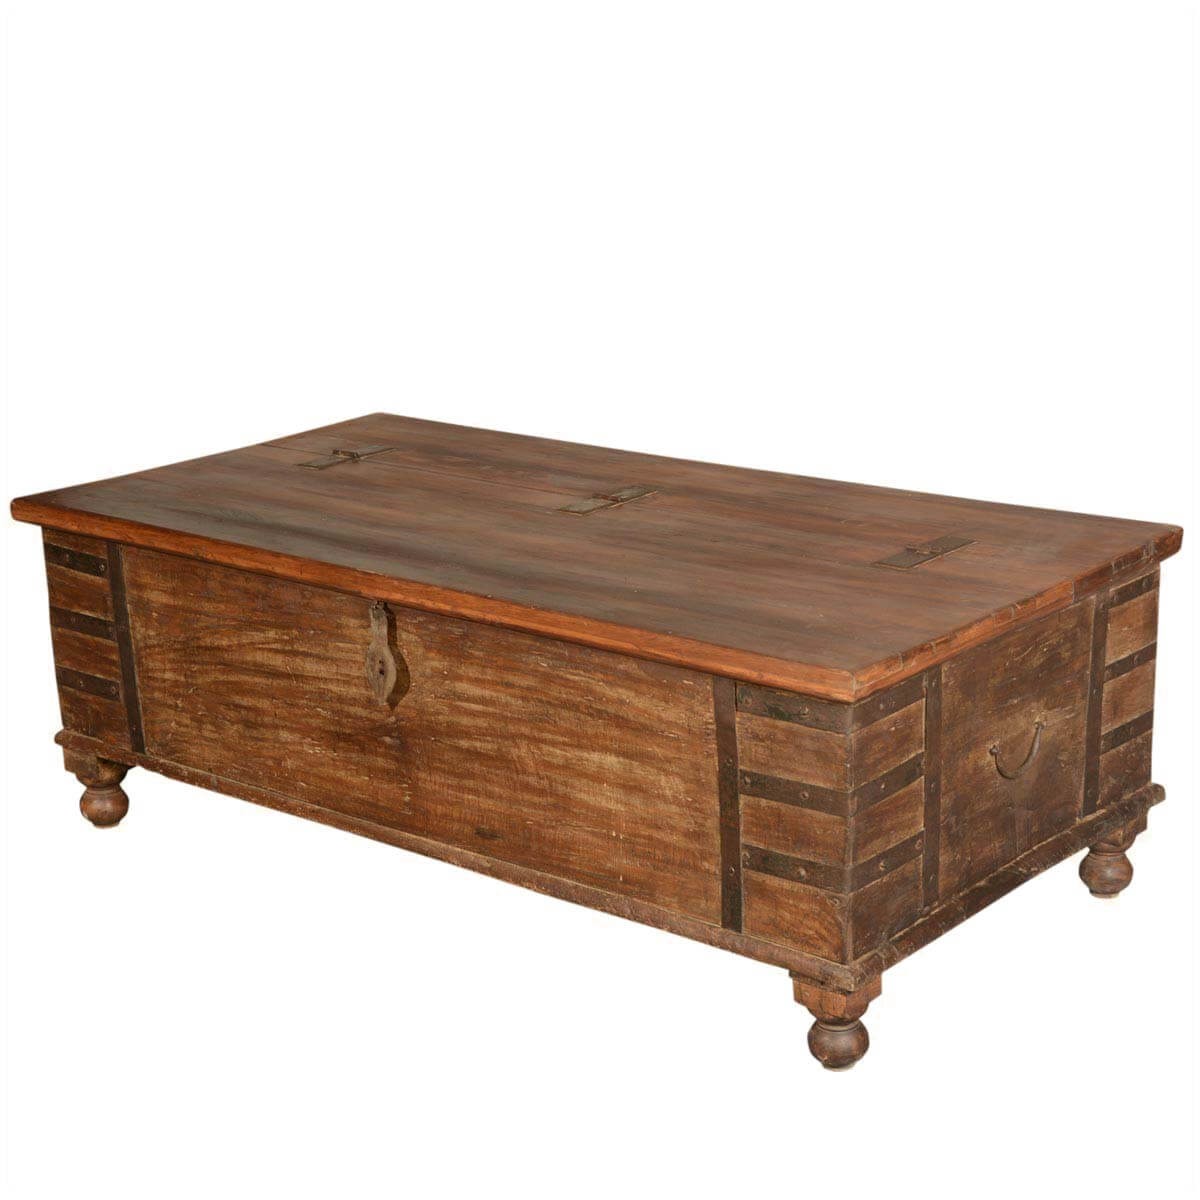 Rustic Reclaimed Wood Standing Coffee Table Chest